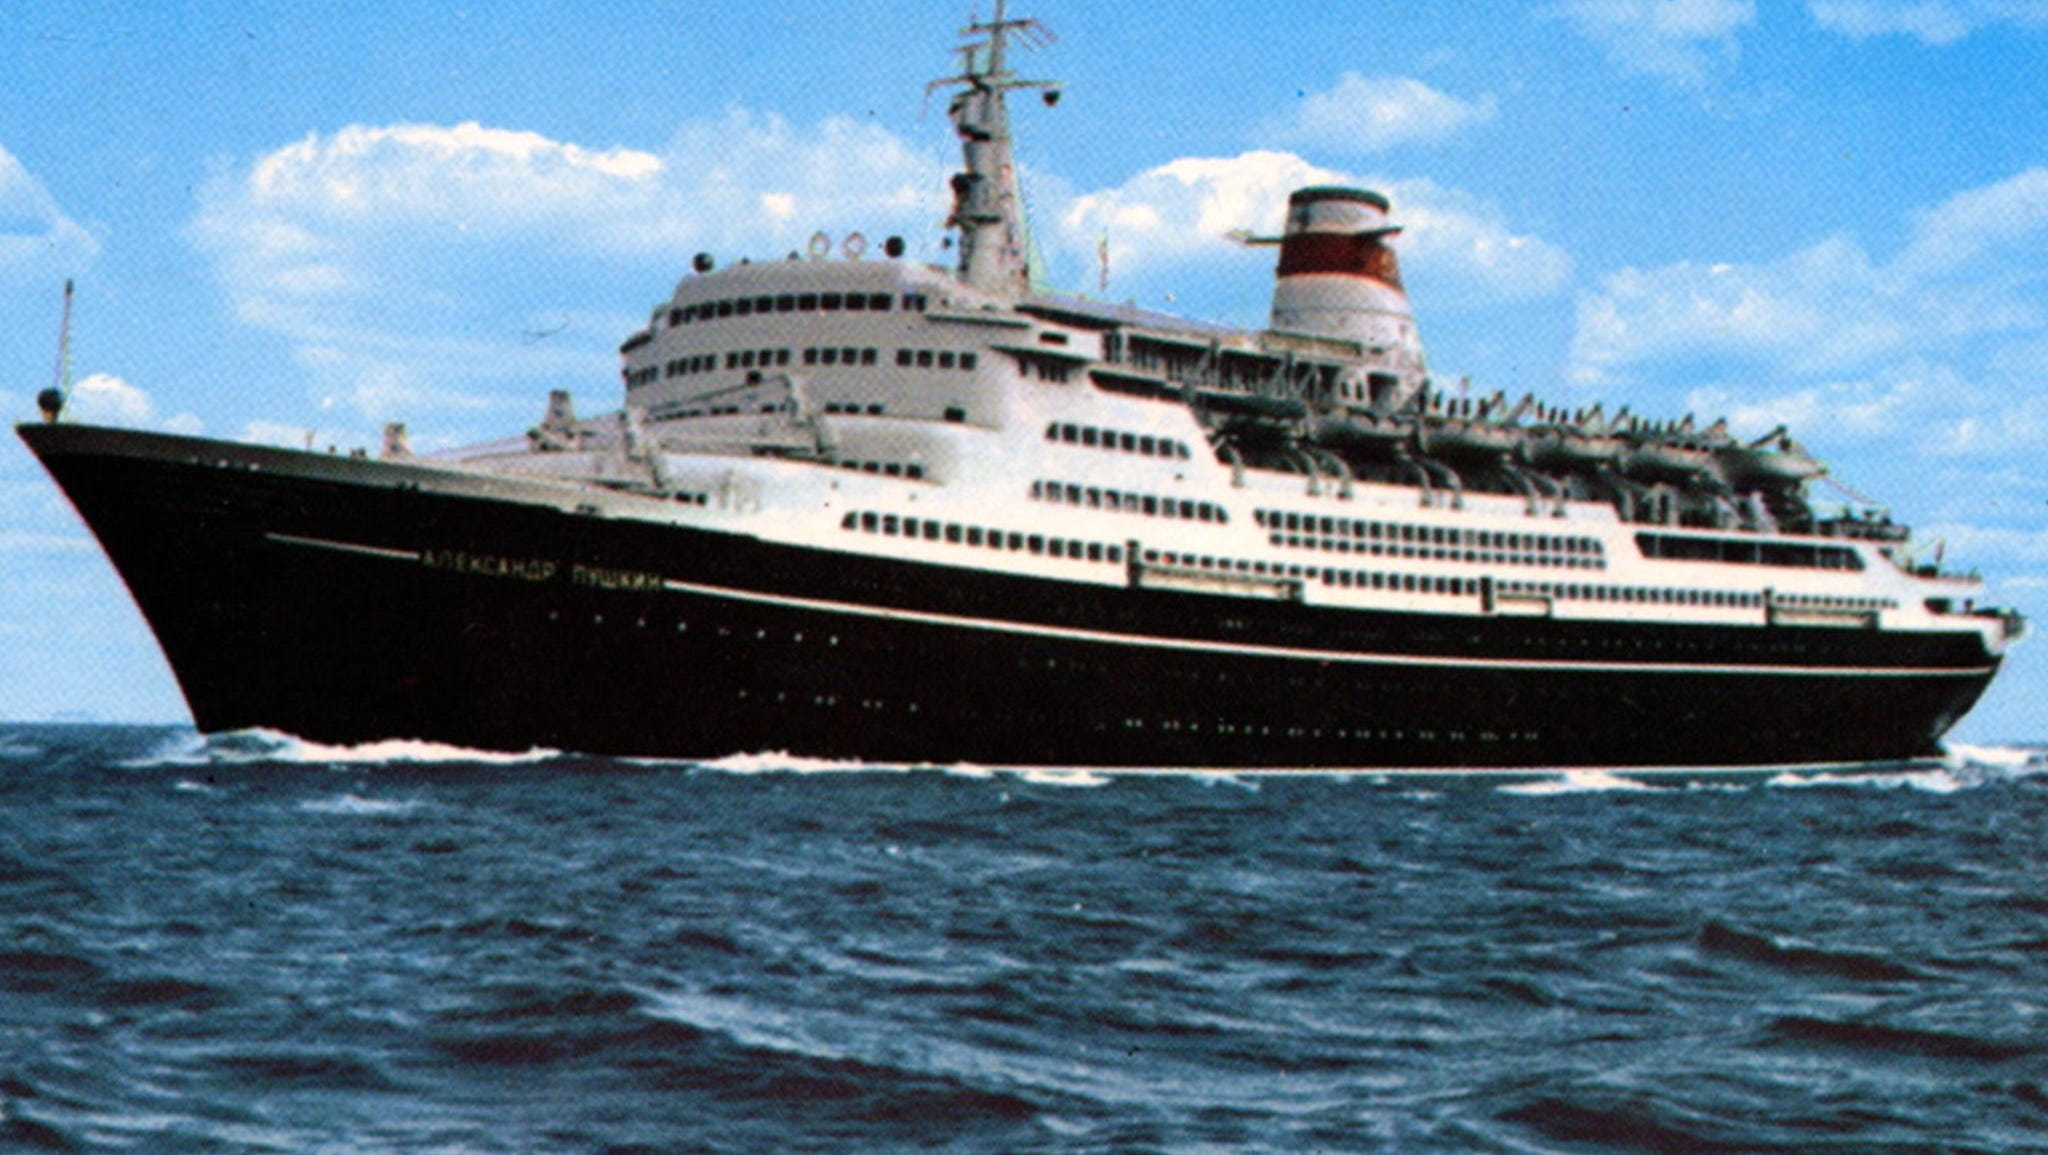 The Marco Polo was the second in a quintet of Soviet-operated liners commissioned for the state-owned Black Sea and Baltic Shipping Companies. Originally built to sail between Leningrad (St. Petersburg) and Montreal, the ship was originally named after the Soviet writer and poet Alexandr Pushkin.